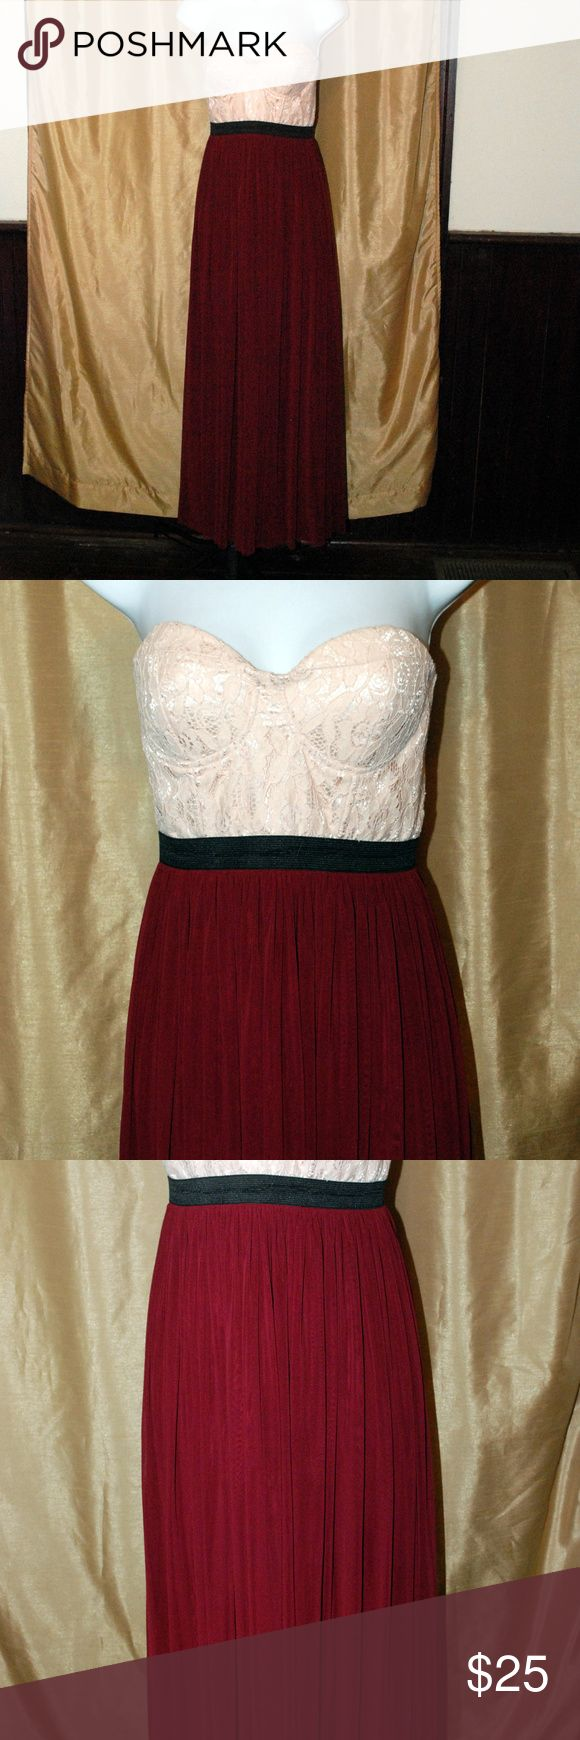 Love Culture size small Strapless maxi dress Fall Love Culture size small Strapless maxi dress Fall Gorgeous Fall colors Smoke free home strapless dress bustier style lace top Free flowing skirt Love Culture Dresses Maxi